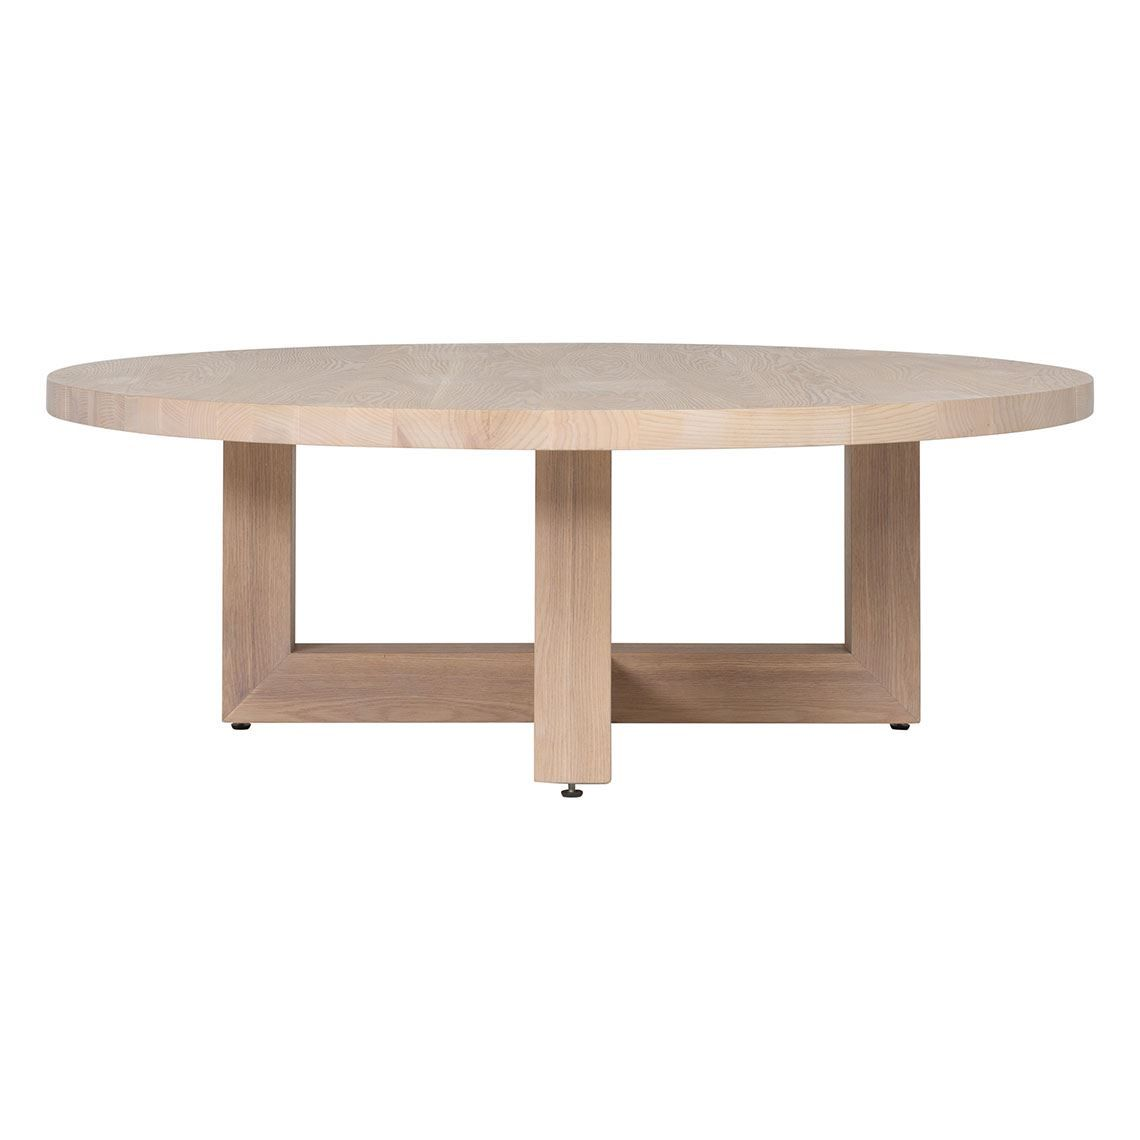 Cove Round Coffee Table Natural Pine Coffee Table Round Coffee Table Circle Coffee Tables [ 1140 x 1140 Pixel ]